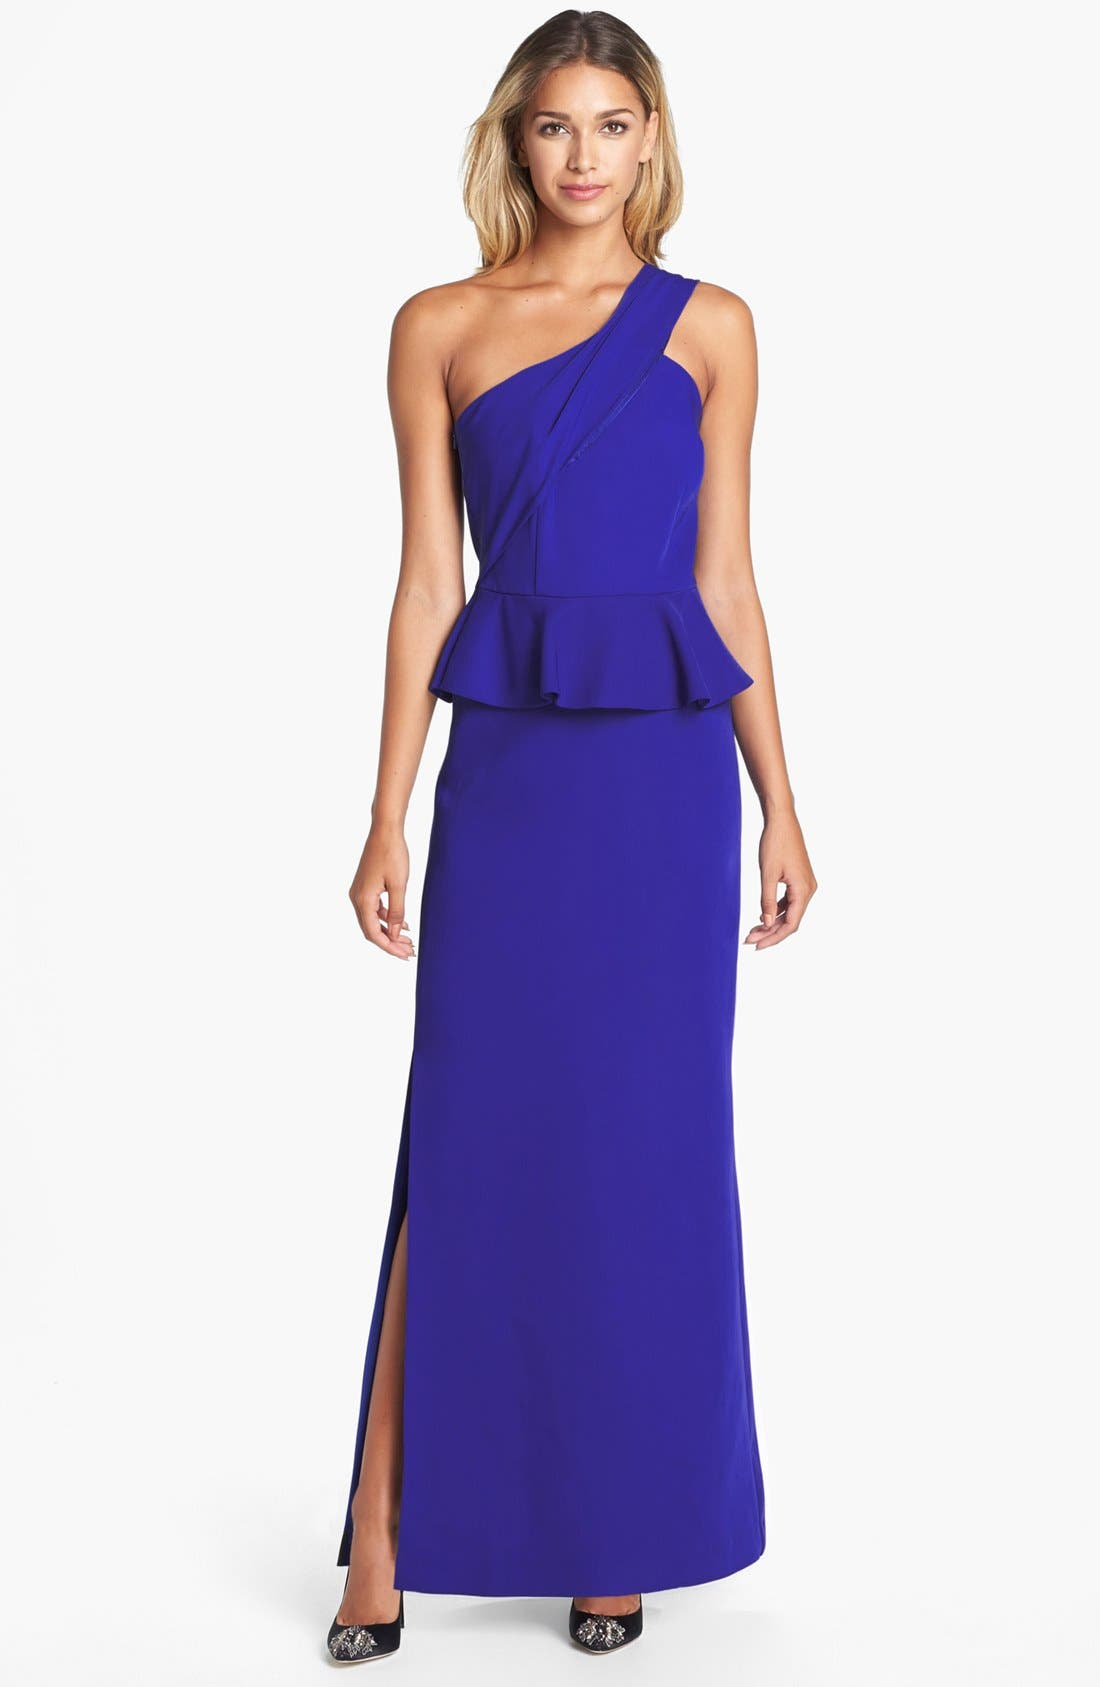 Alternate Image 1 Selected - Laundry by Shelli Segal One-Shoulder Peplum Gown